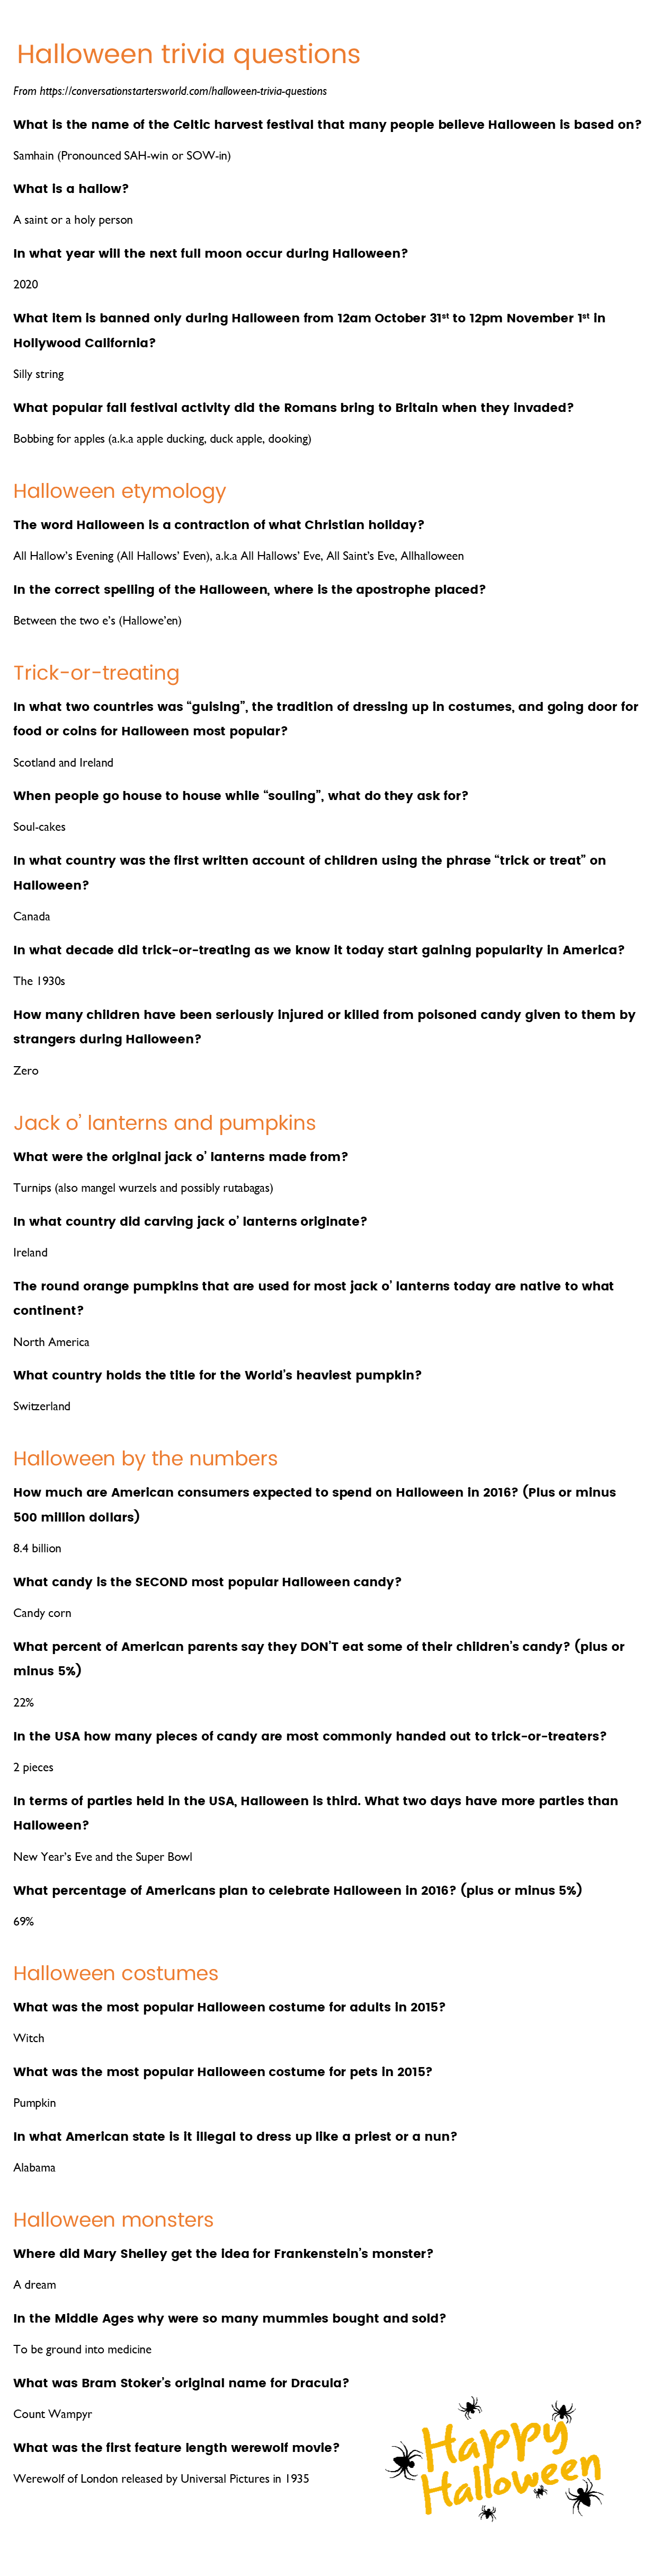 photo relating to Free Printable Black History Trivia Questions and Answers named 29 Arduous Halloween Trivia Thoughts - How several can on your own